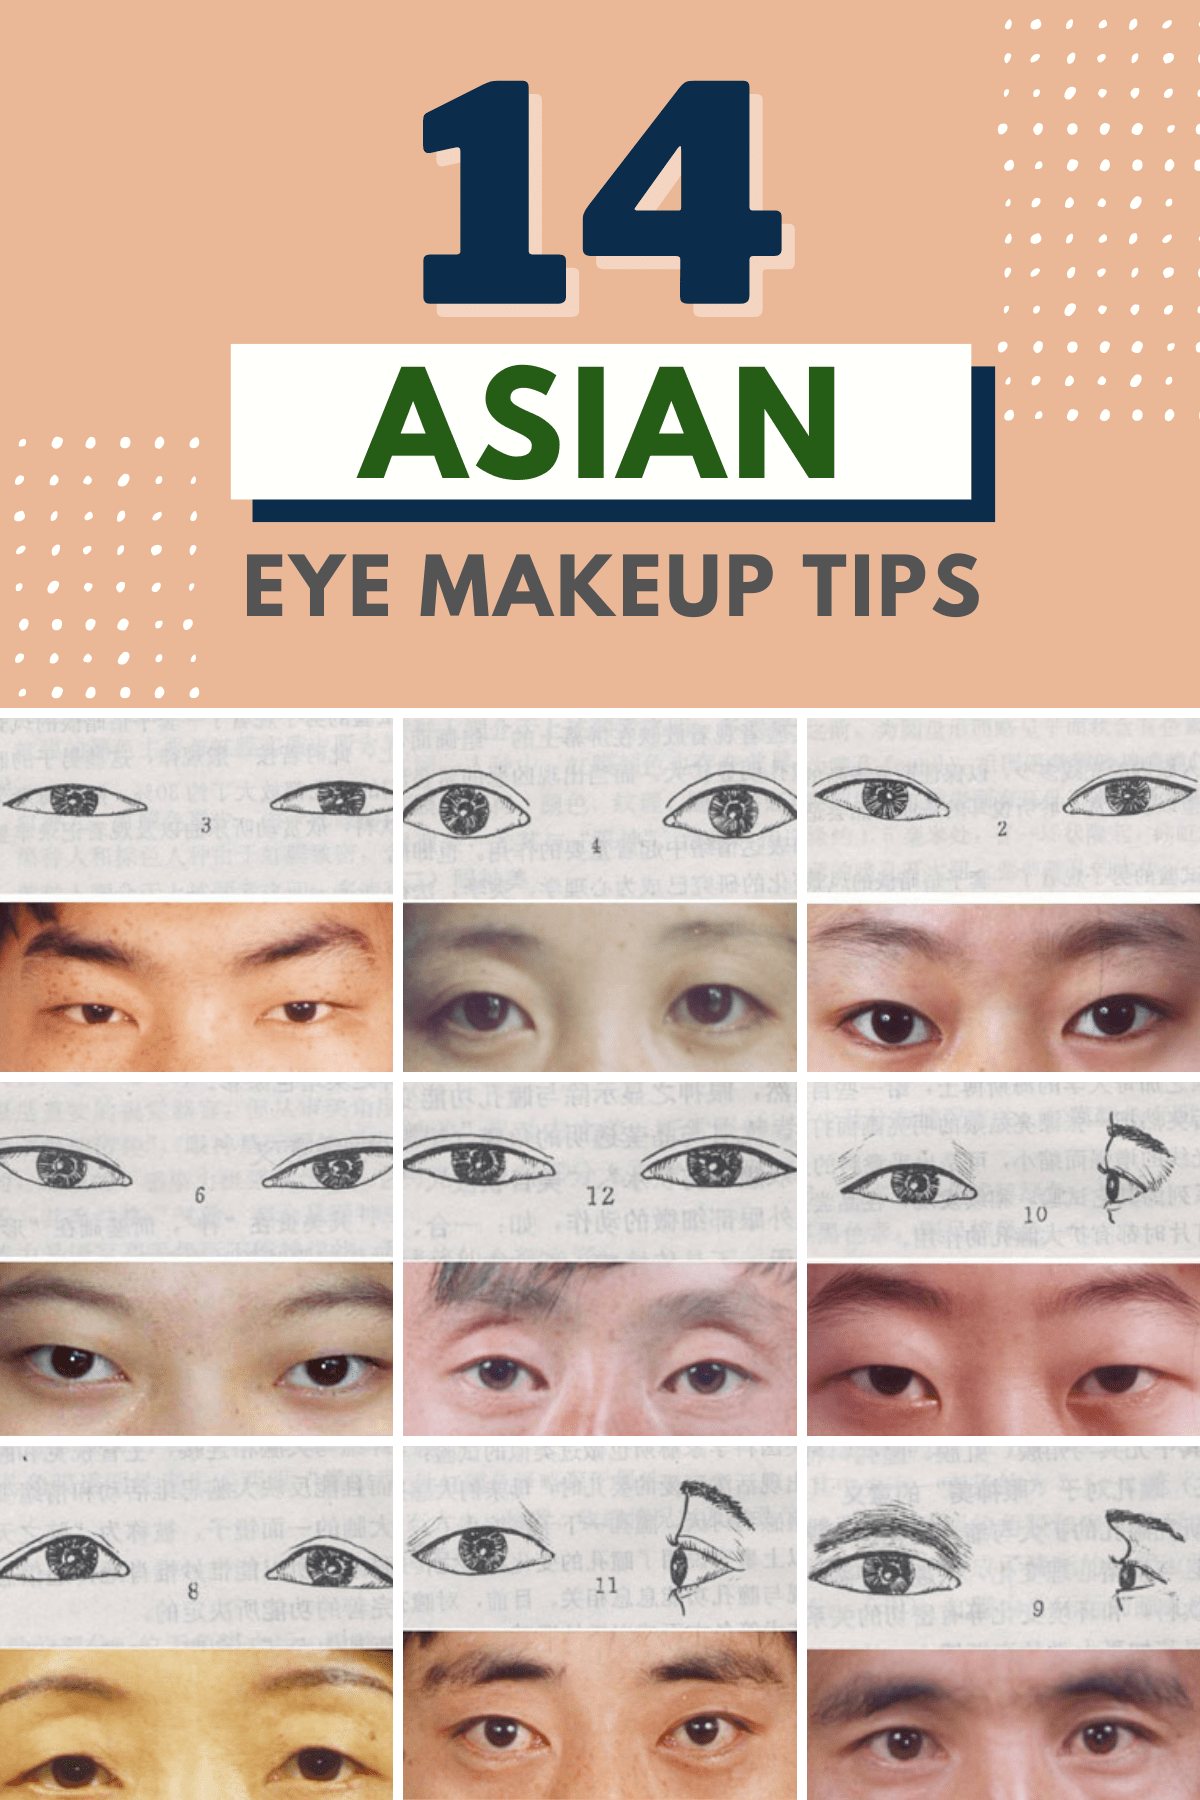 different types of asian eye makeup tips